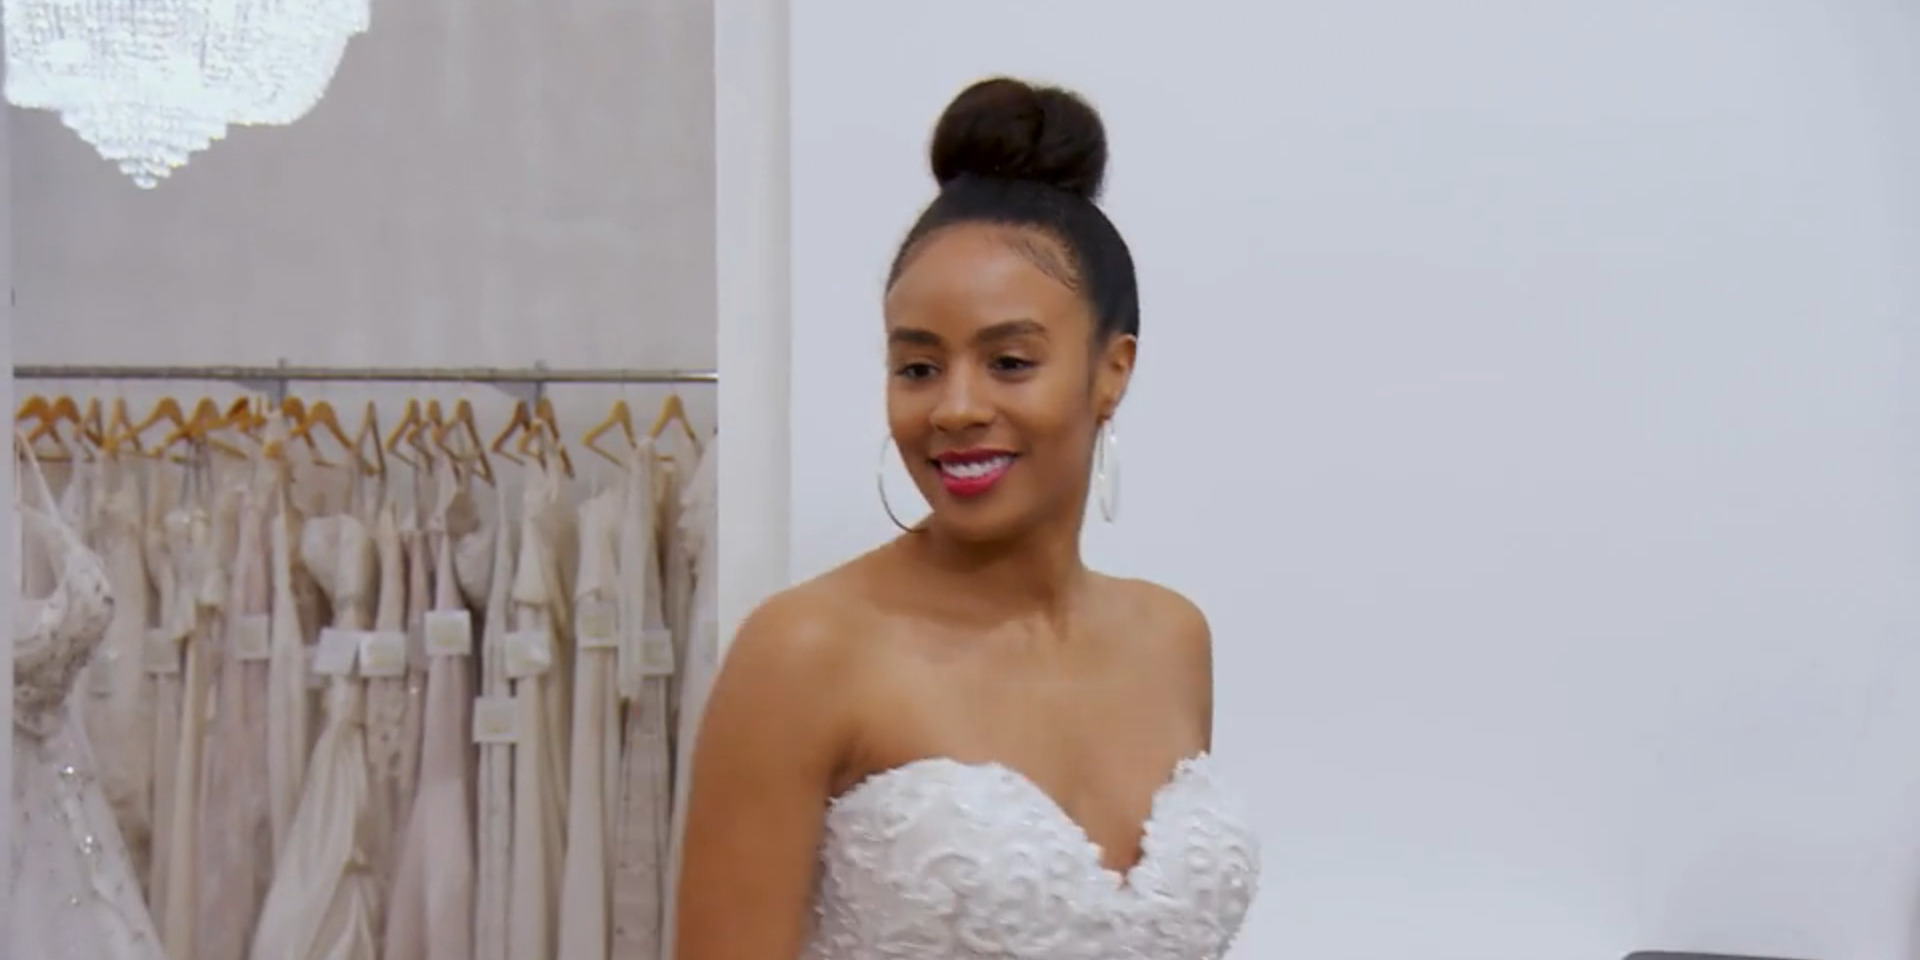 Married at First Sight Season 11 Episode 1